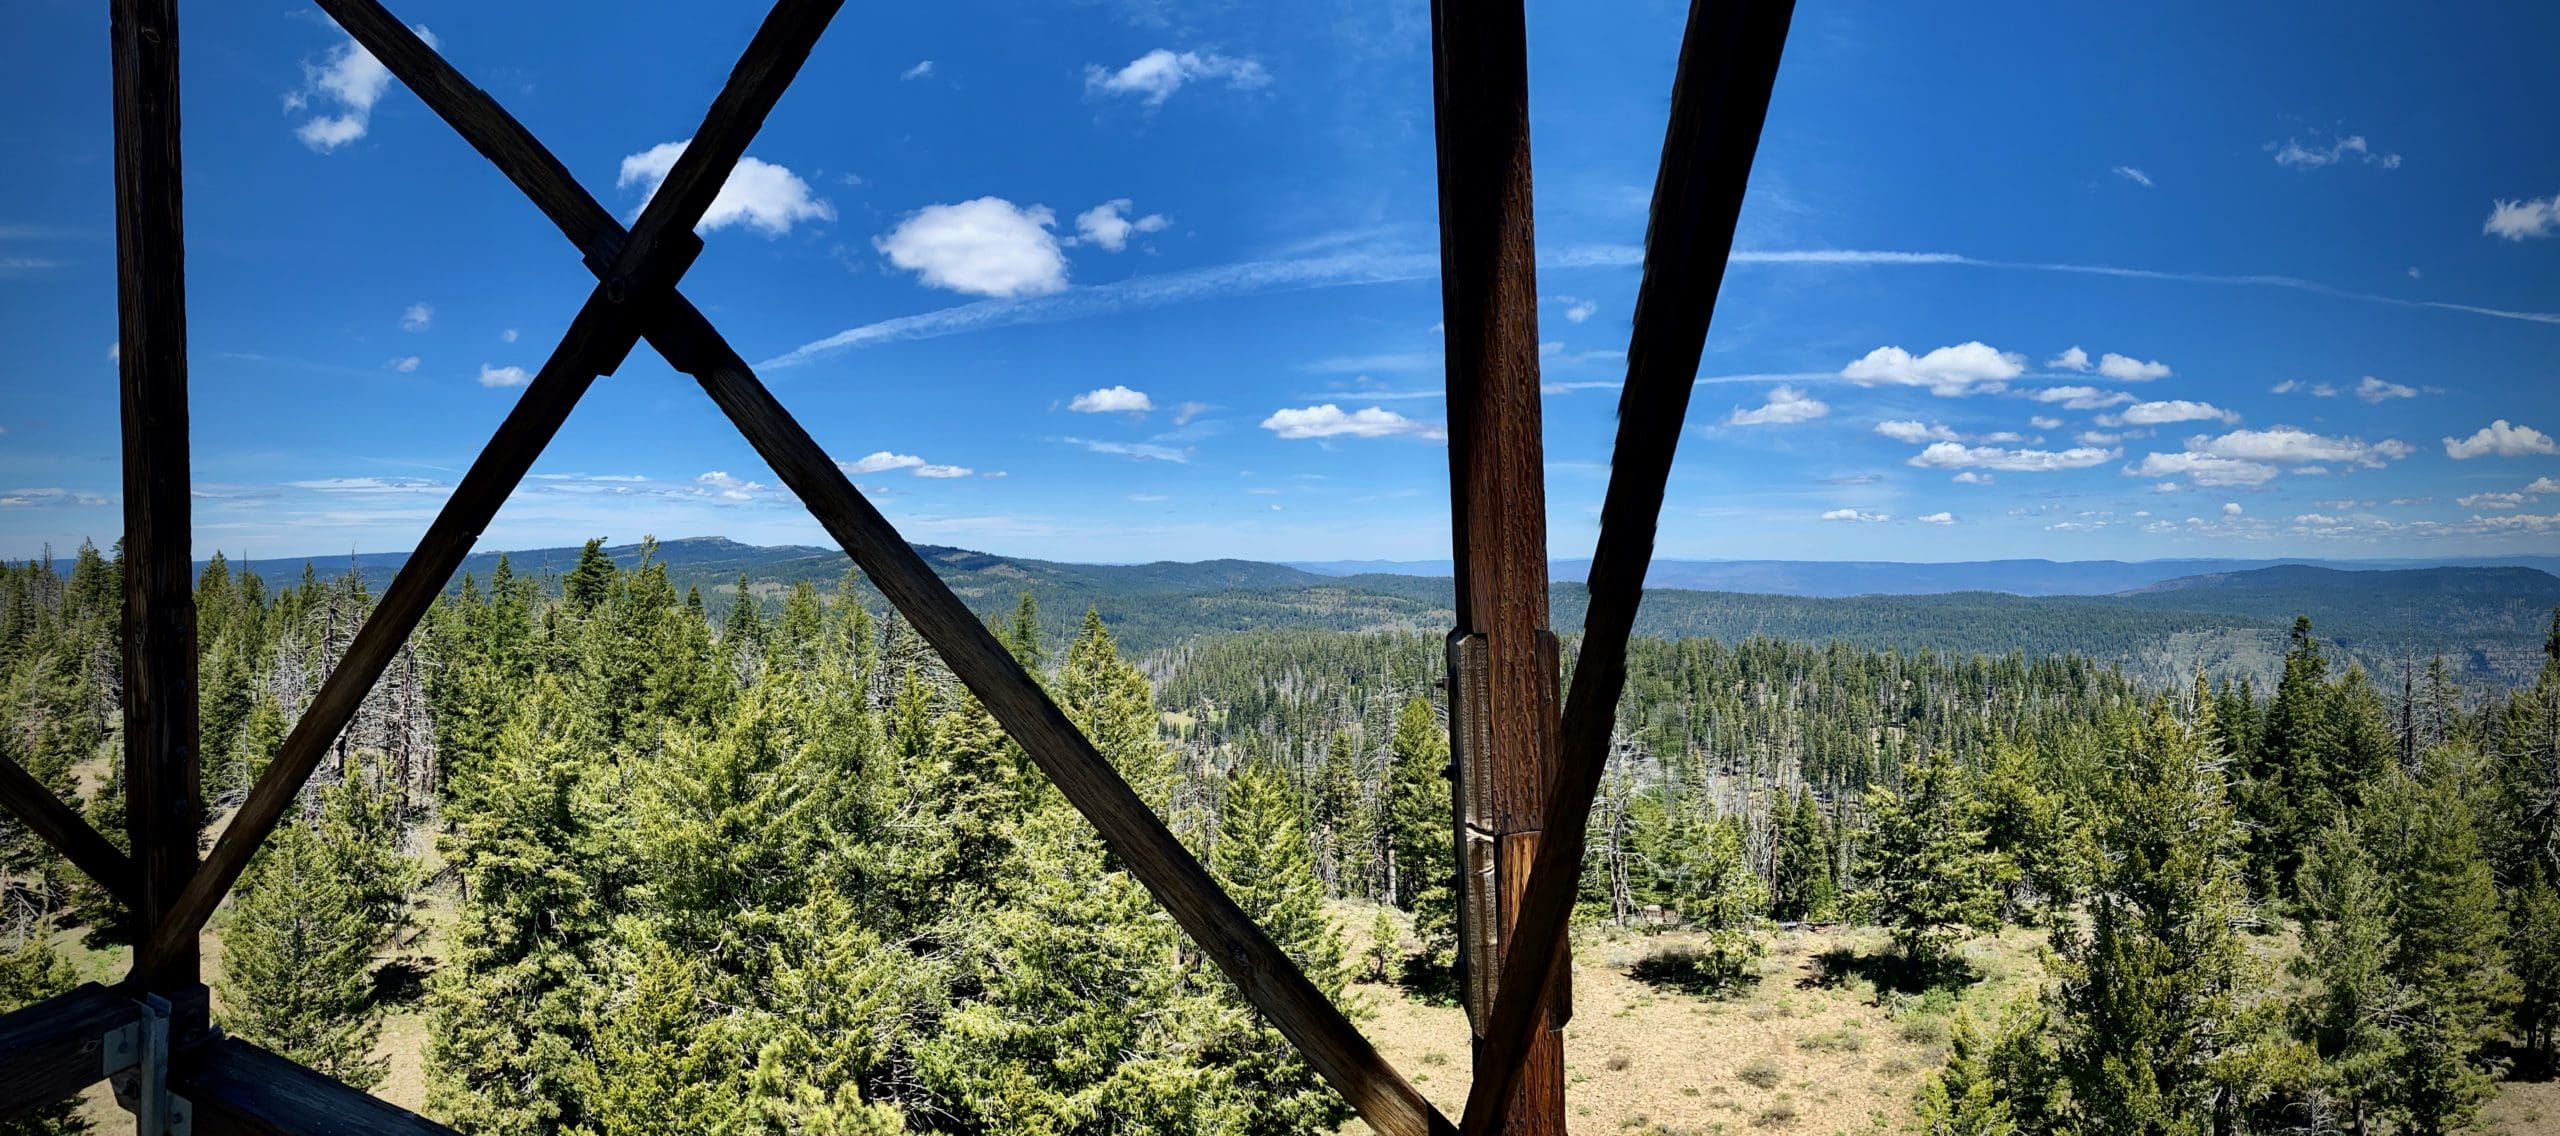 A view of the Black Canyon Wilderness from Wolf Mountain Lookout in the Ochoco National Forest.